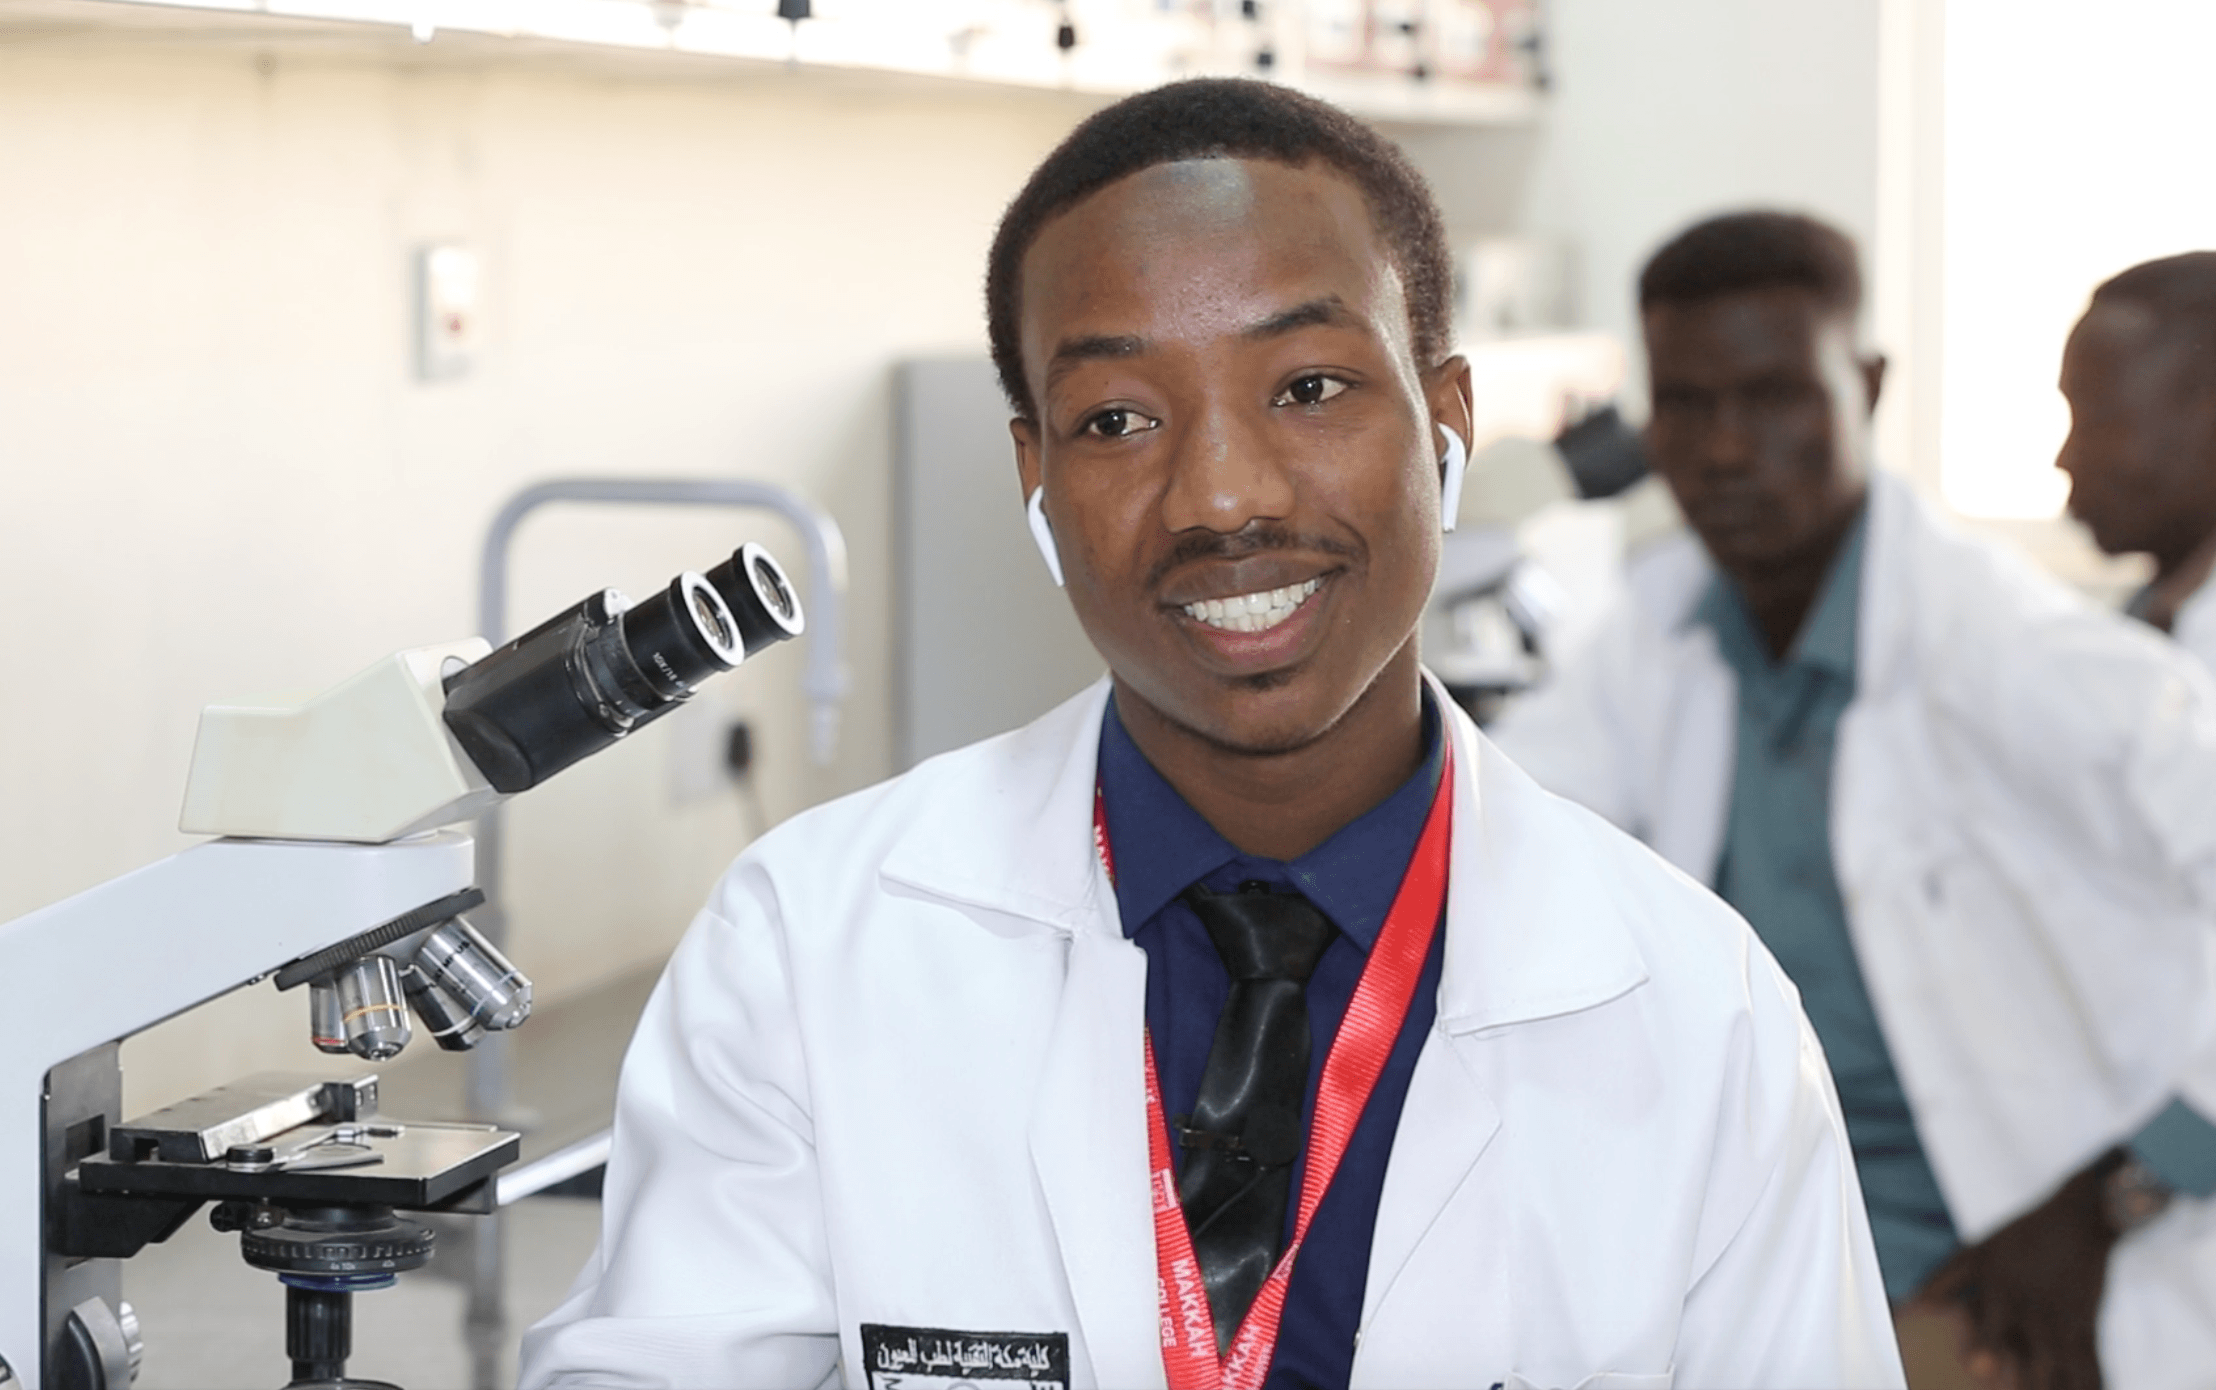 Meet the student, who wants to bring back talent to Nigeria